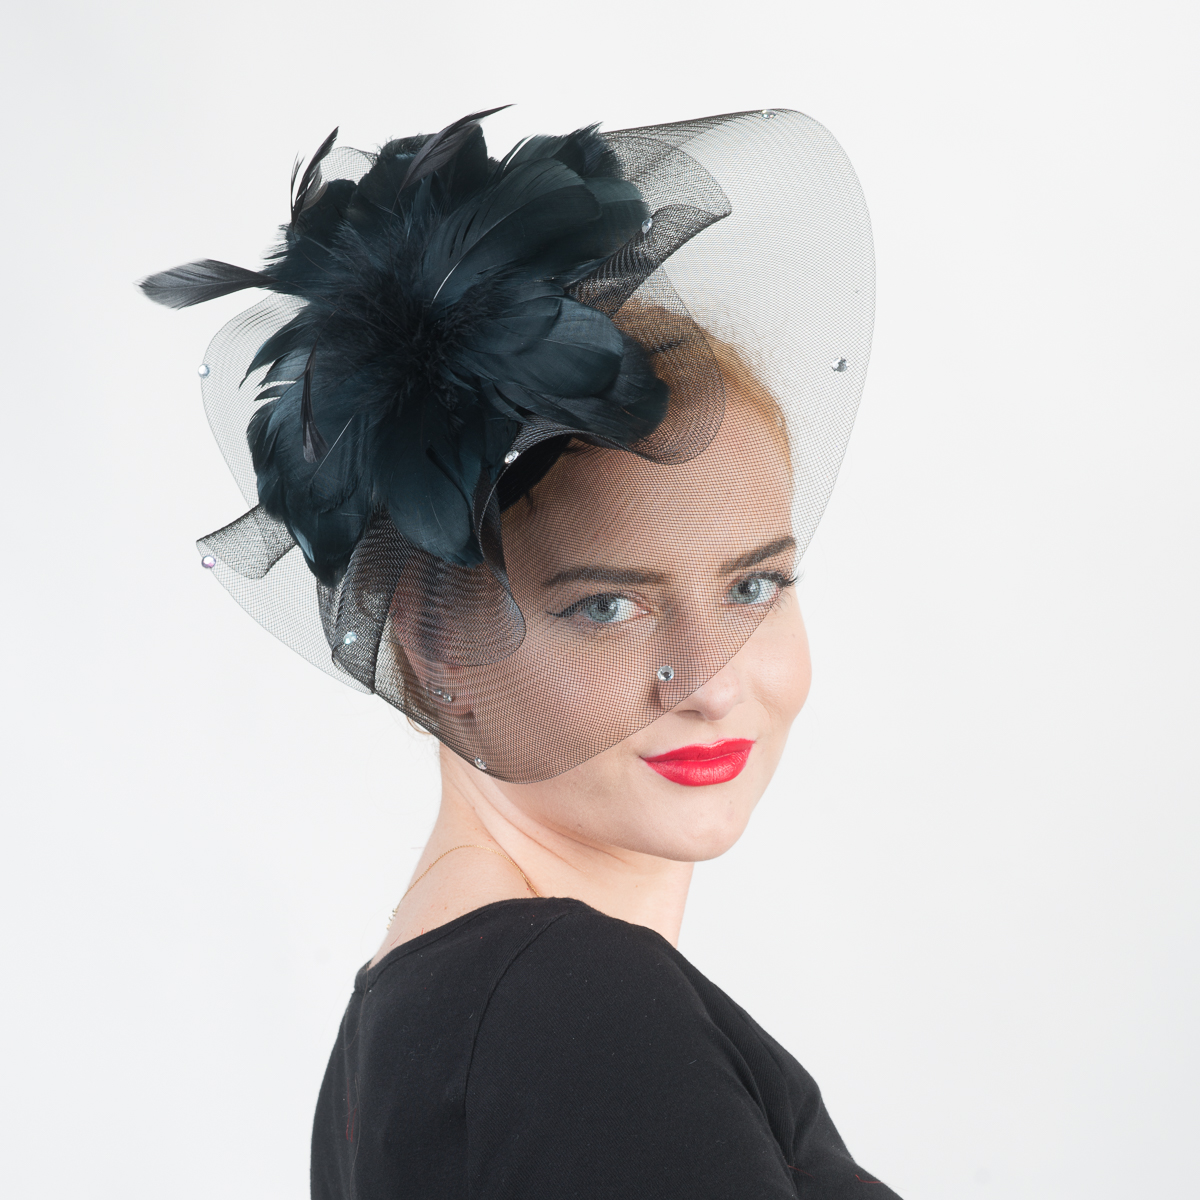 Black Feather Flower Comb Fascinator Cocktail Hats-5725C-BK- Sun Yorkos  b368a3fea05